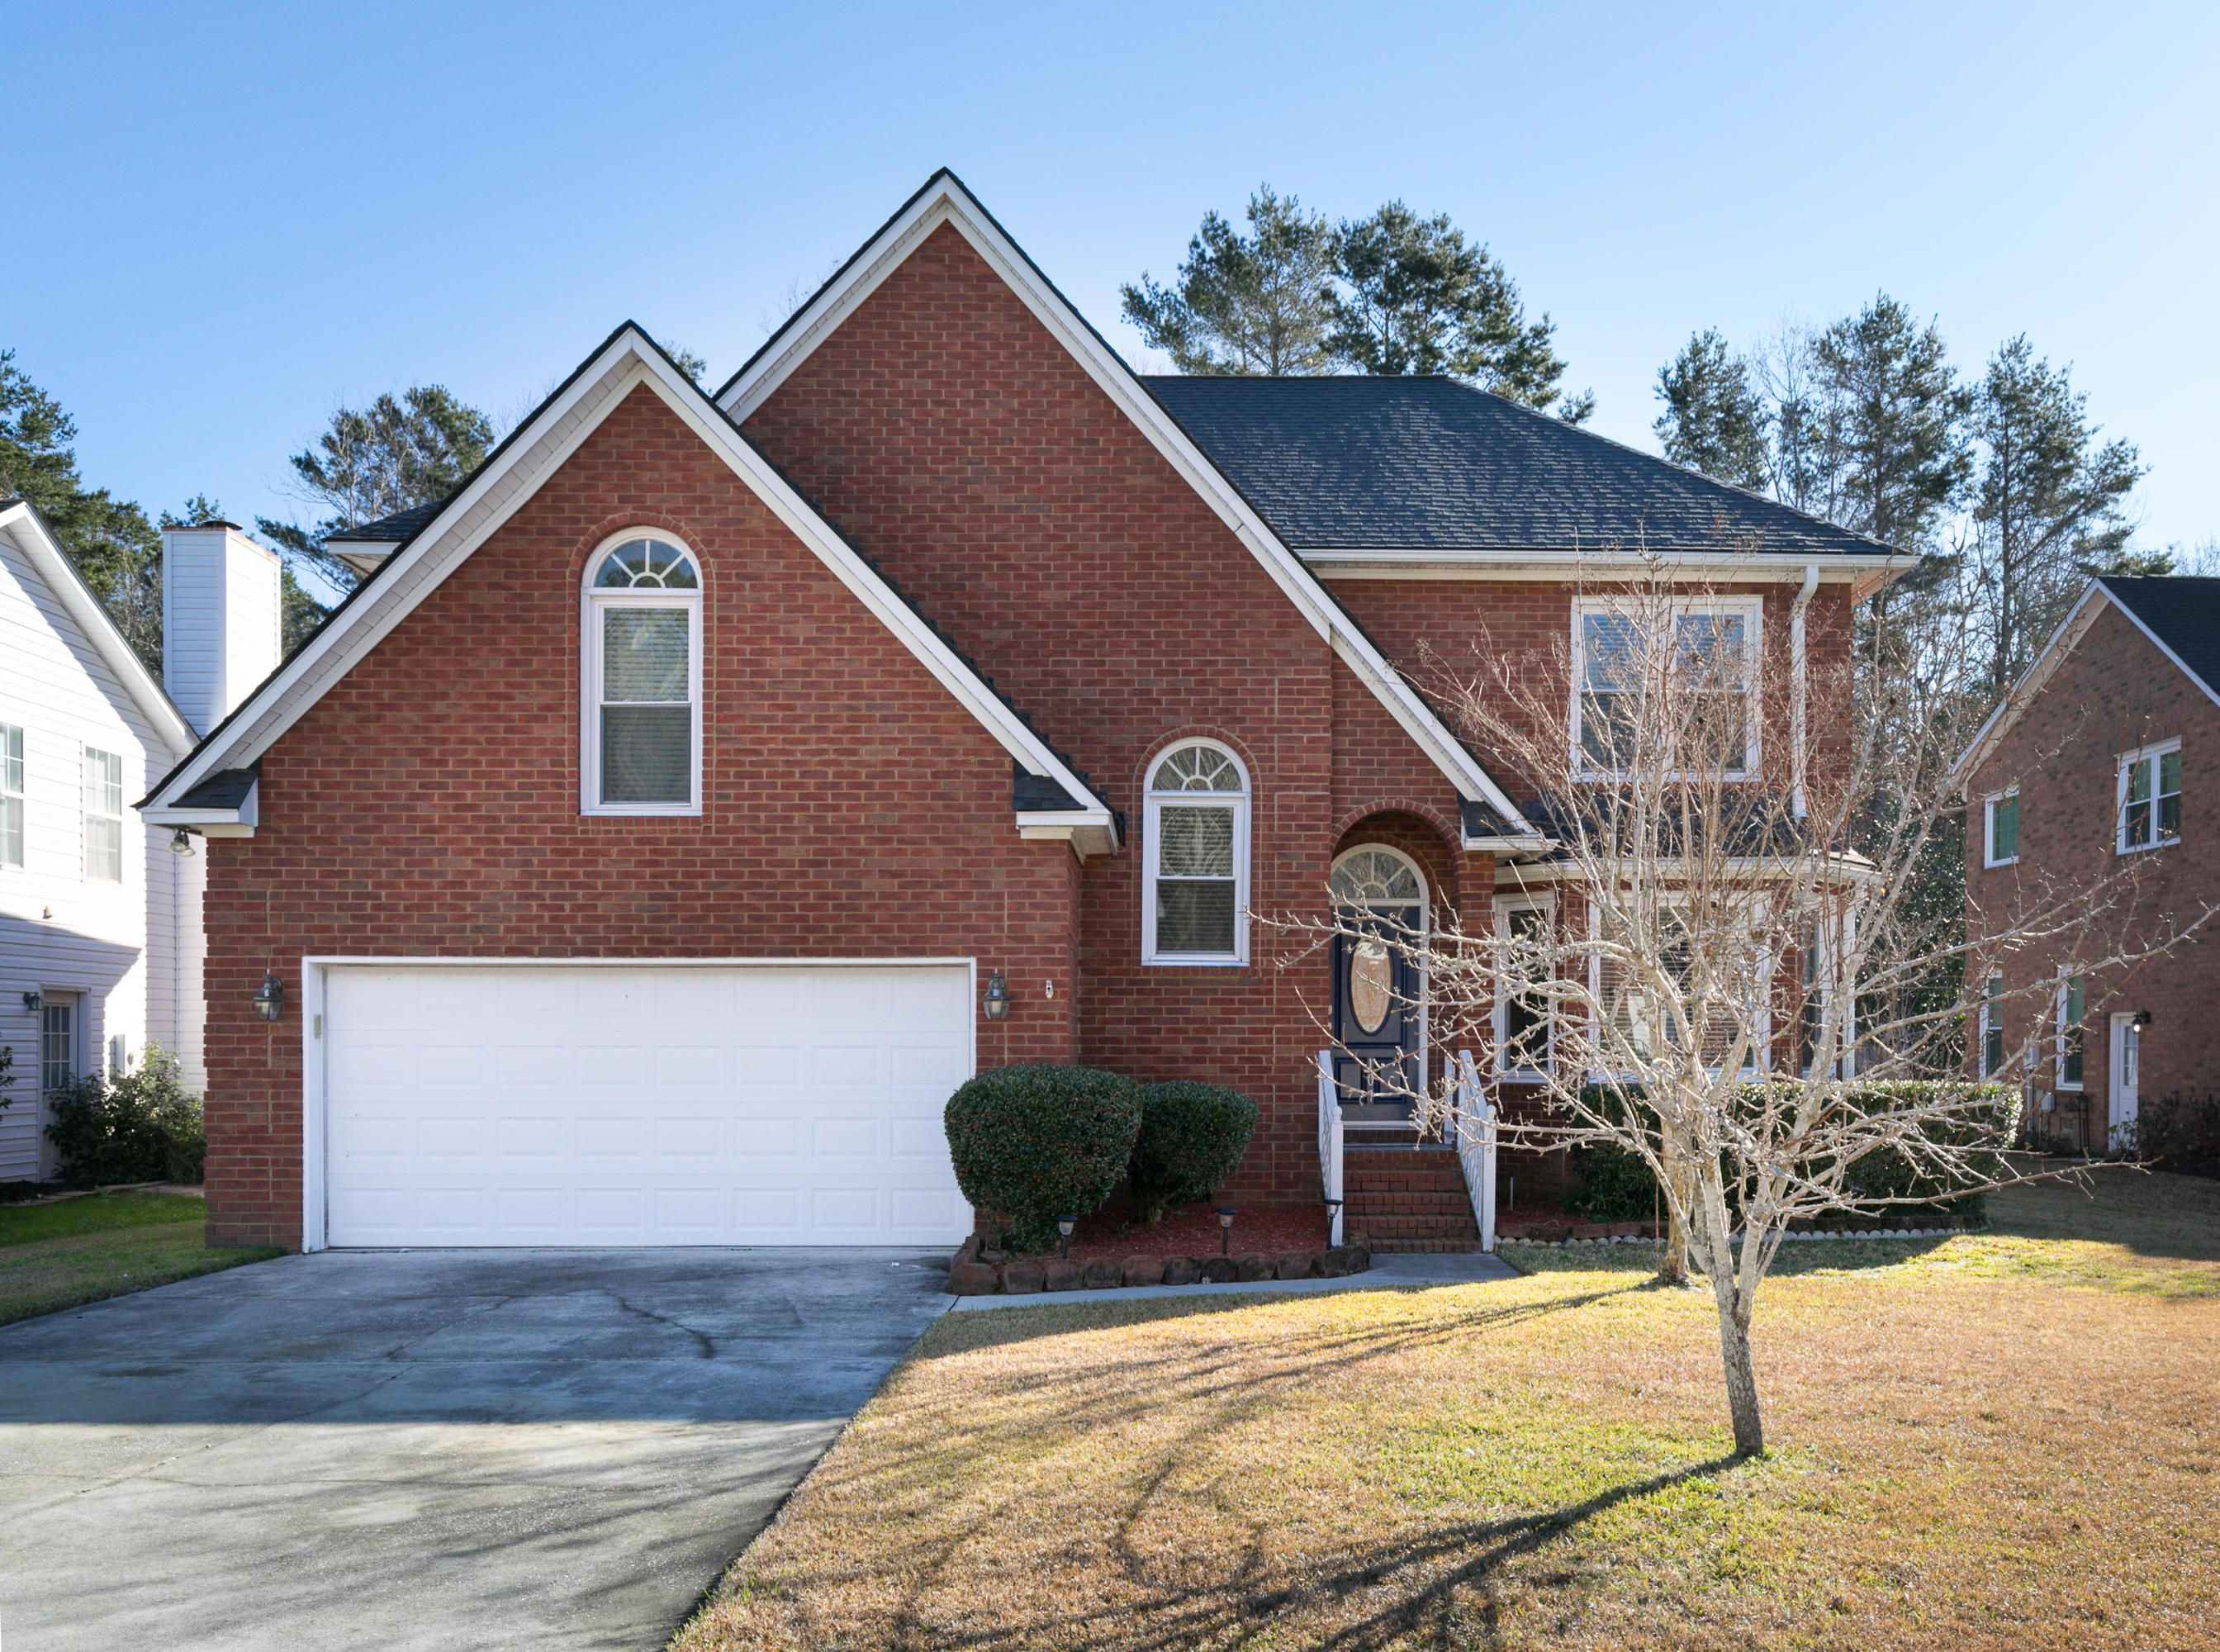 This home in the Hamlets has it all Location, Brick, 3000